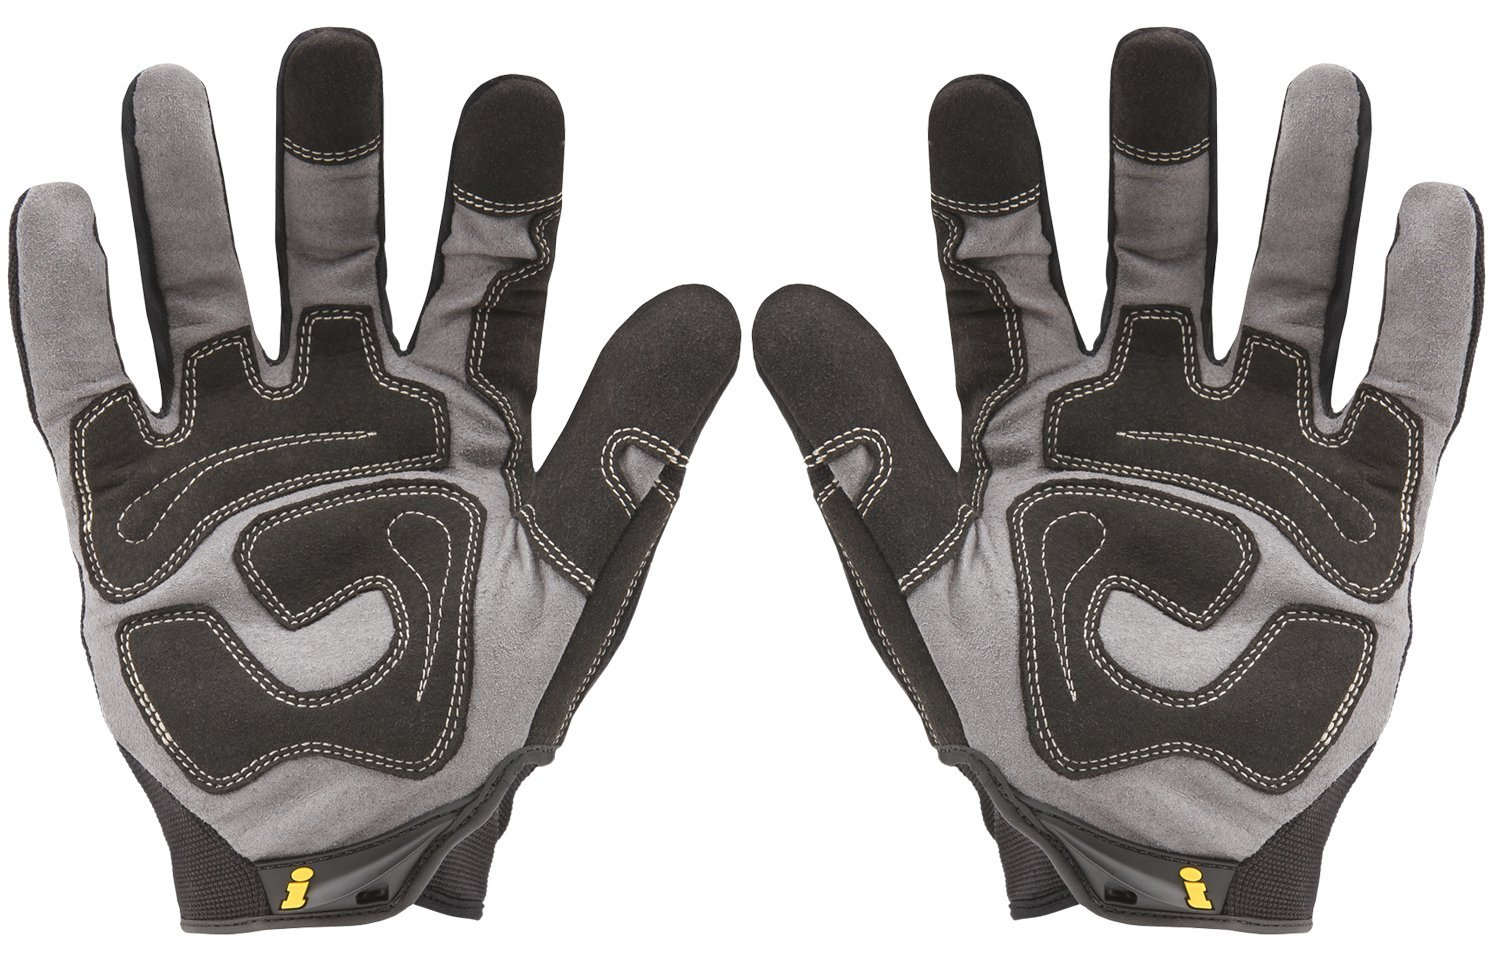 Ironclad General Utility Work Gloves GUG-04-L, Large by Ironclad (Image #3)